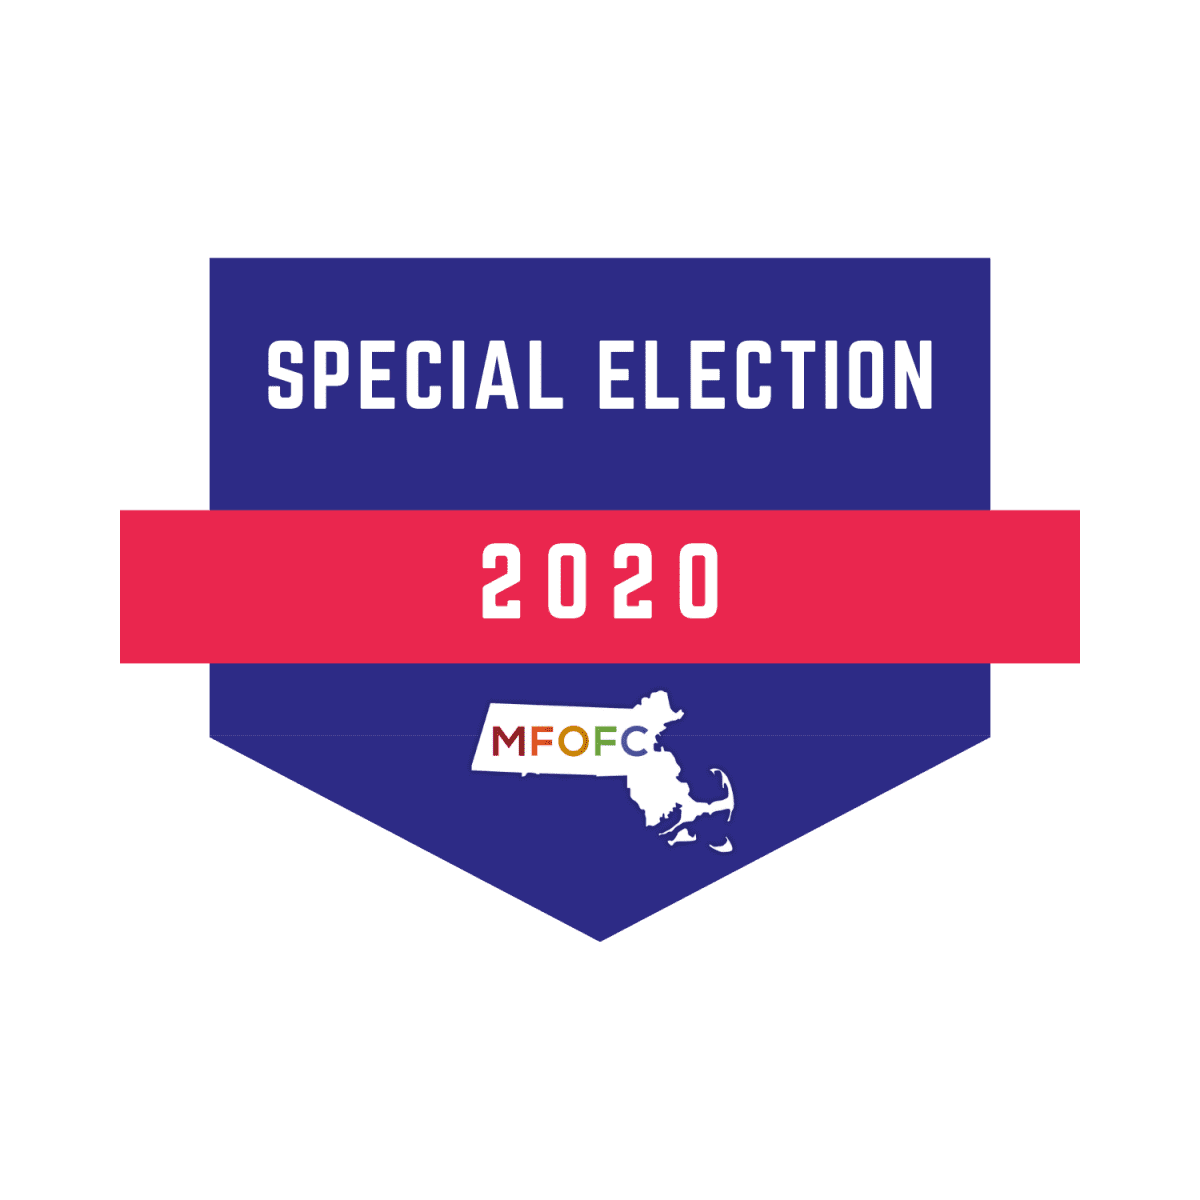 MFOFC SPECIAL ELECTION 2020